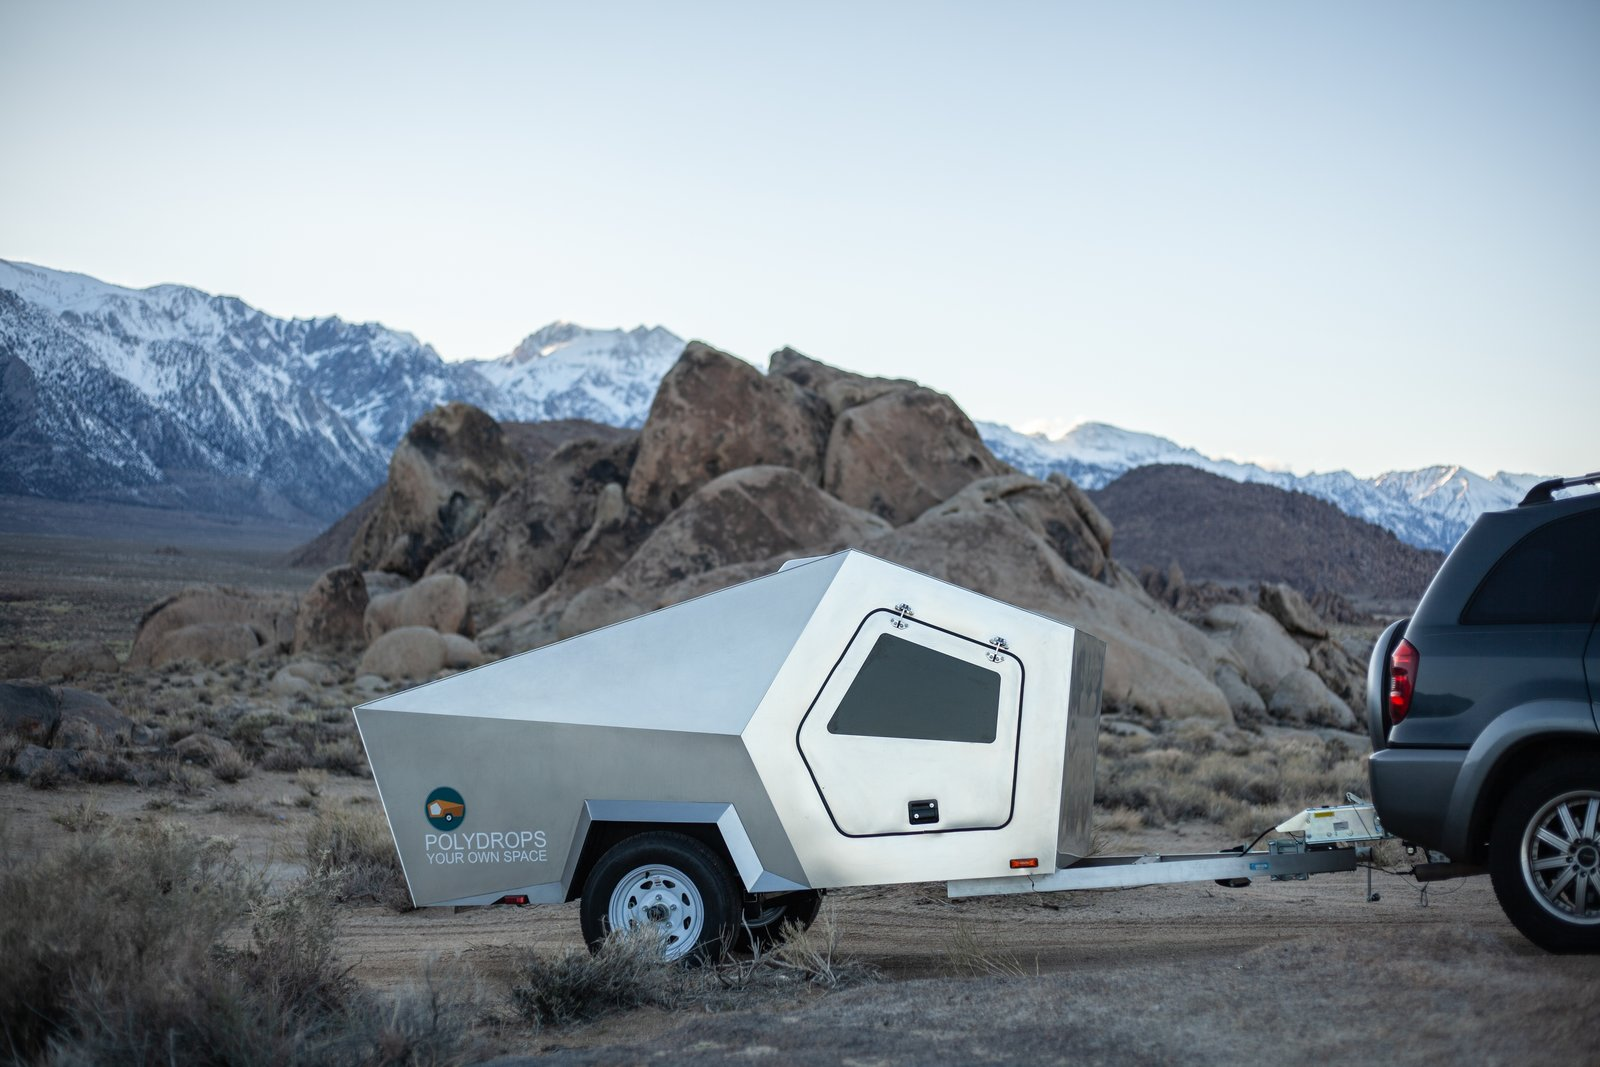 This Futuristic Teardrop Trailer Is Just $9K For the First 20 Owners